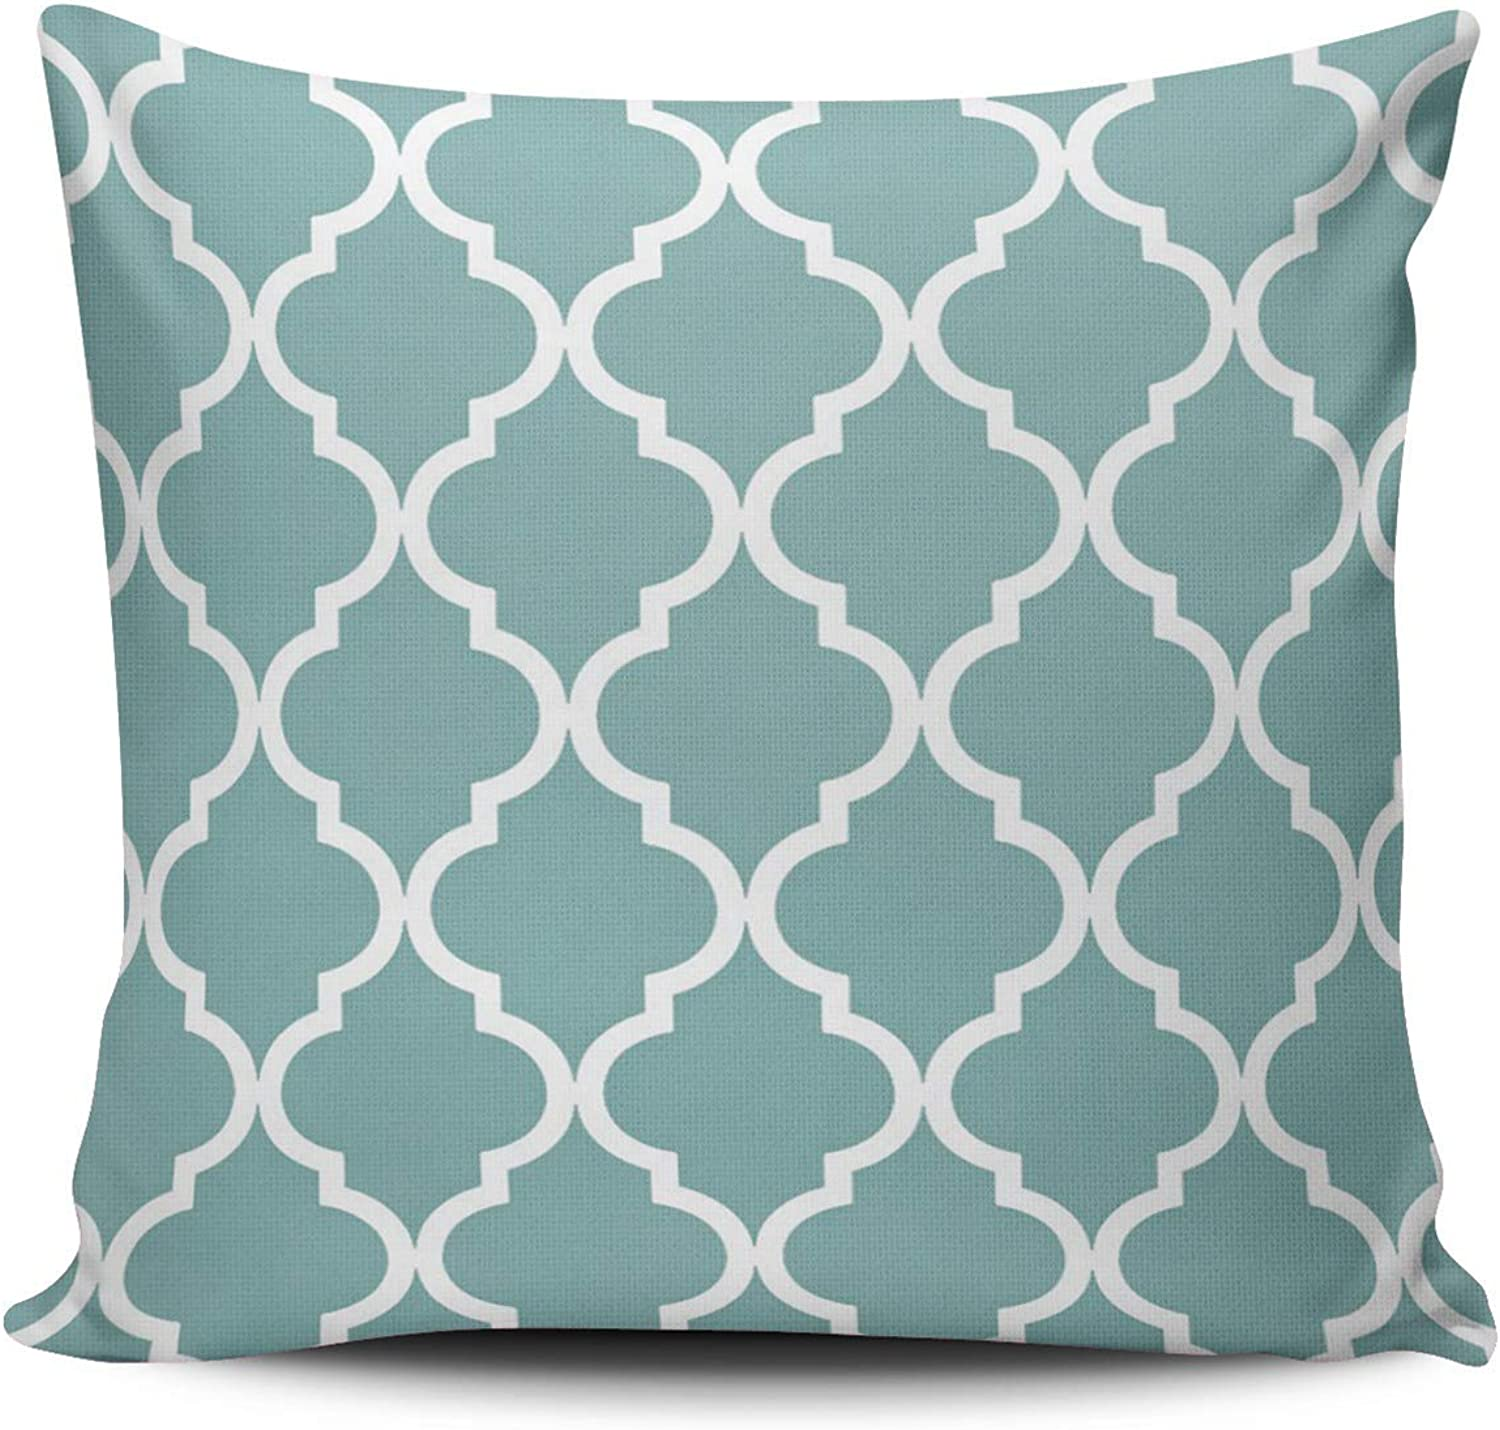 VAMIX Classic Quatrefoil in Sea Glass bluee and White Home Decoration Pillowcase 18X18 Inch Square Stylish and Elegant Design Throw Pillow case Cushion Cover Double Sided Printed